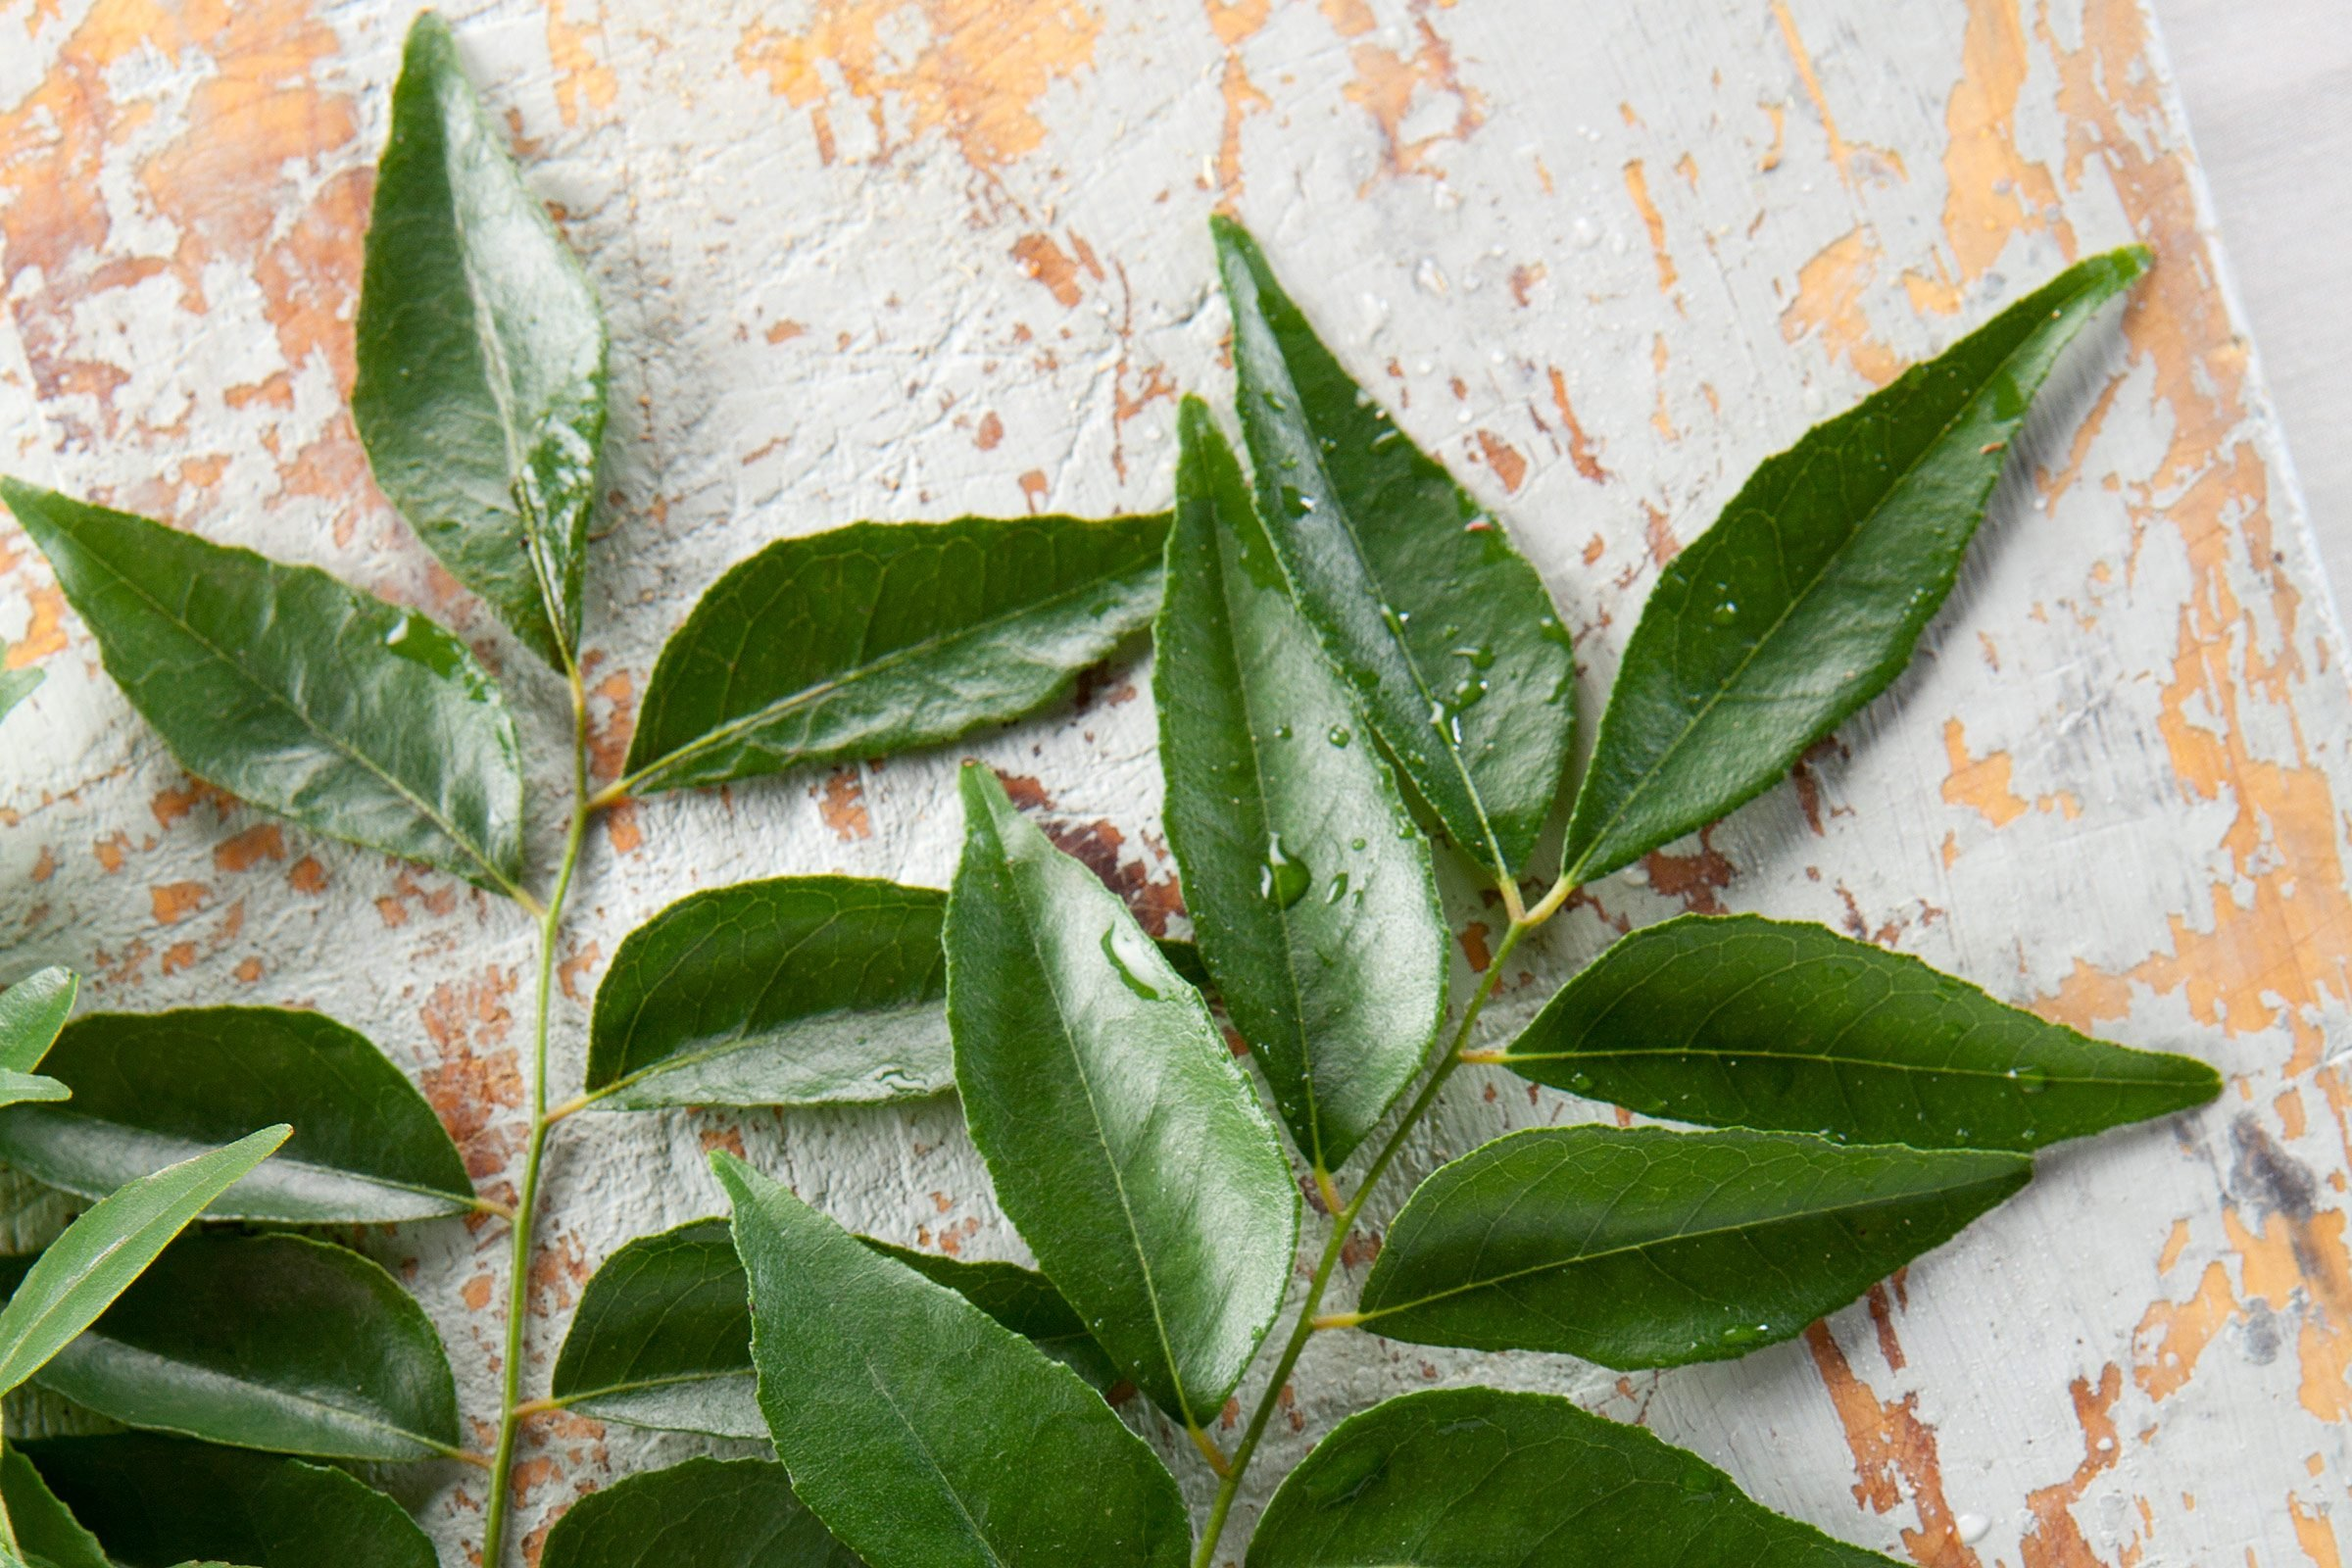 6. Curry leaves